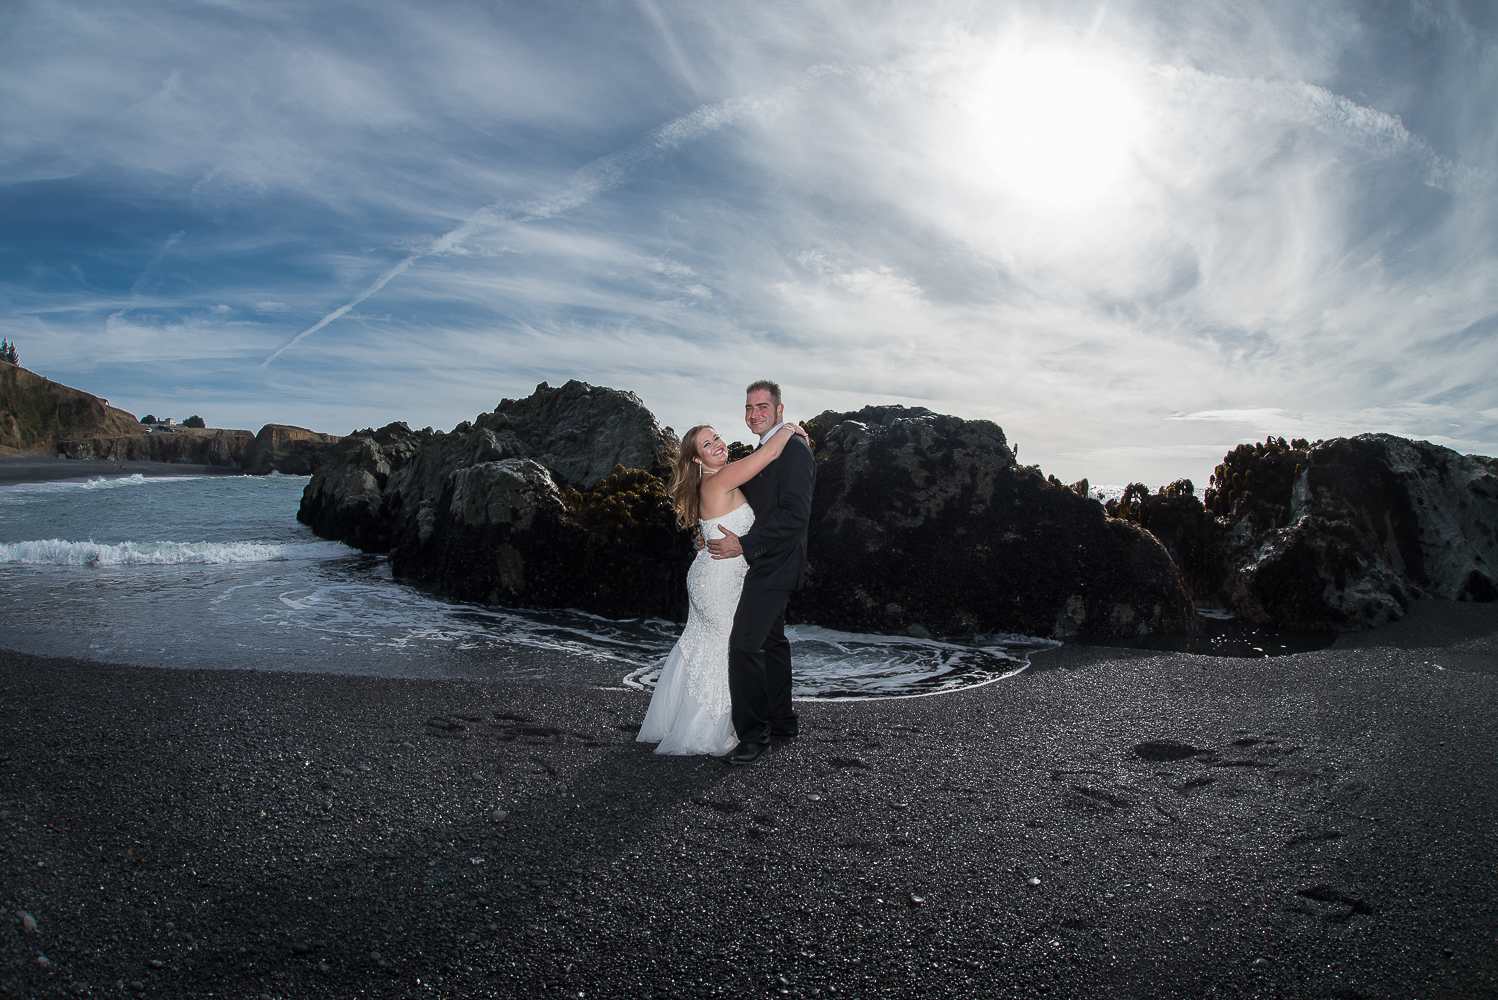 Shelter Cove-Intimate Destination beach Wedding-Parky's Pics Photography-Humboldt County_-22.jpg